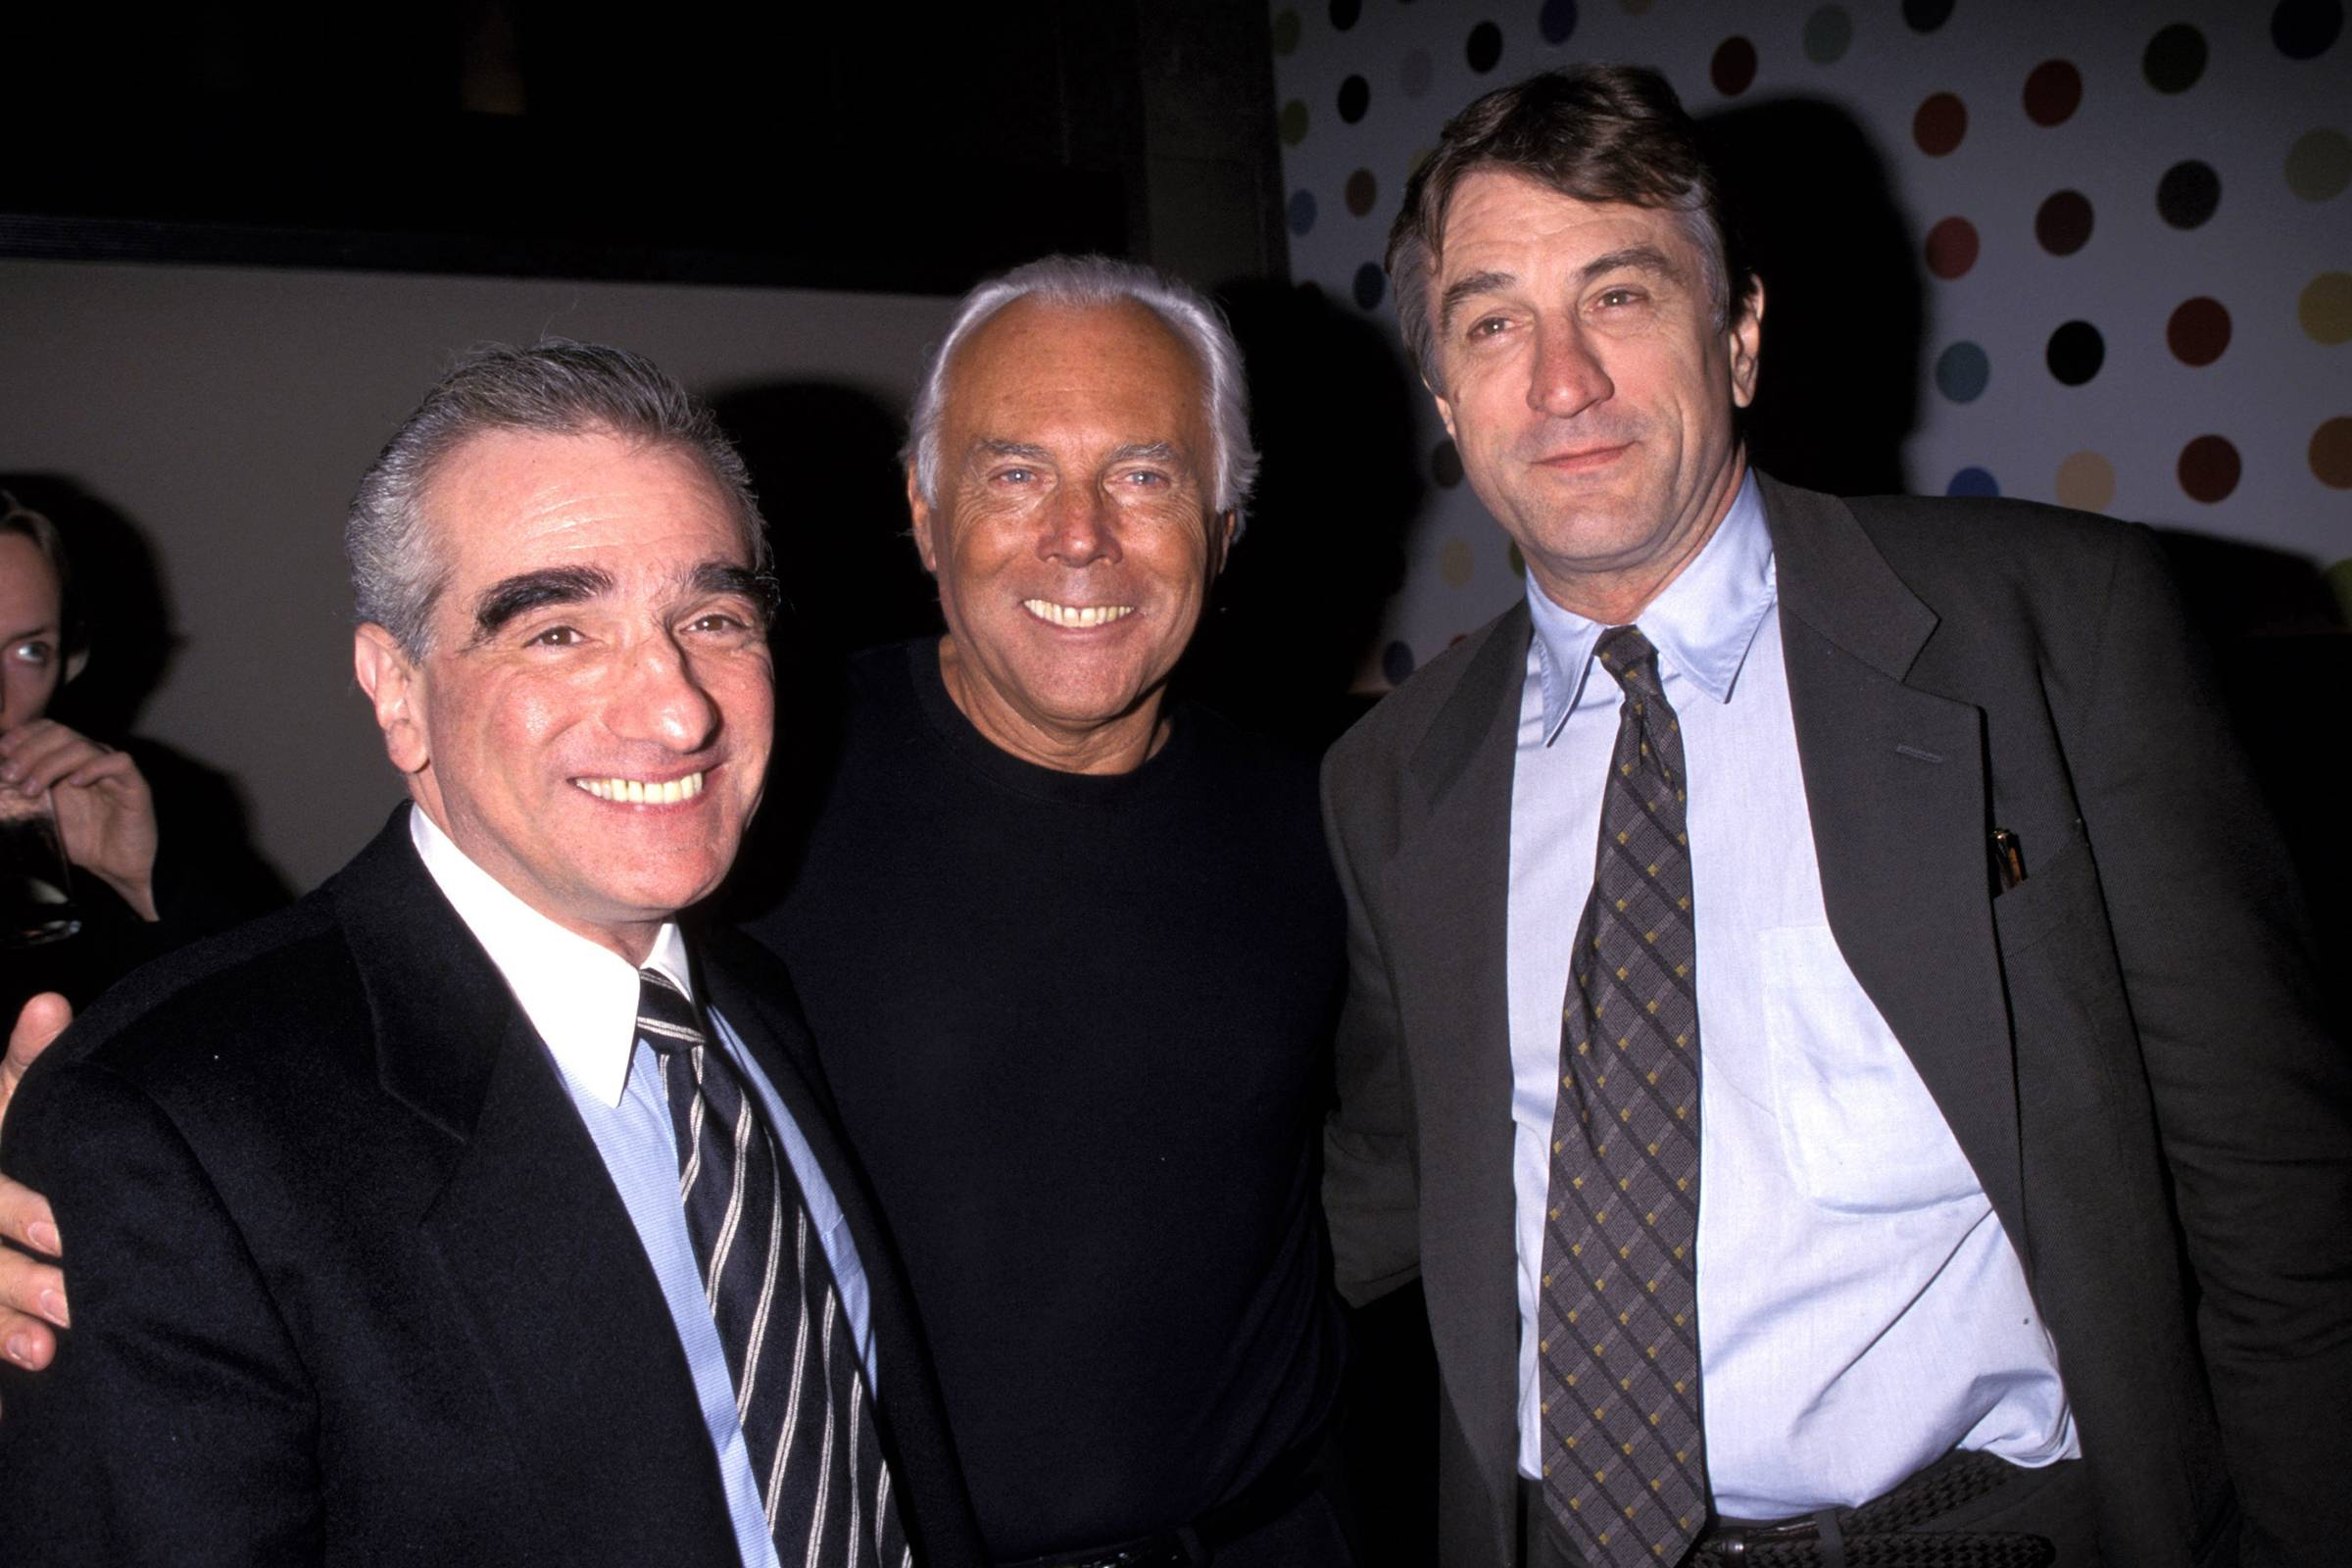 Martin scorsese, Giorgio Armani, and Robert De Niro in 1990